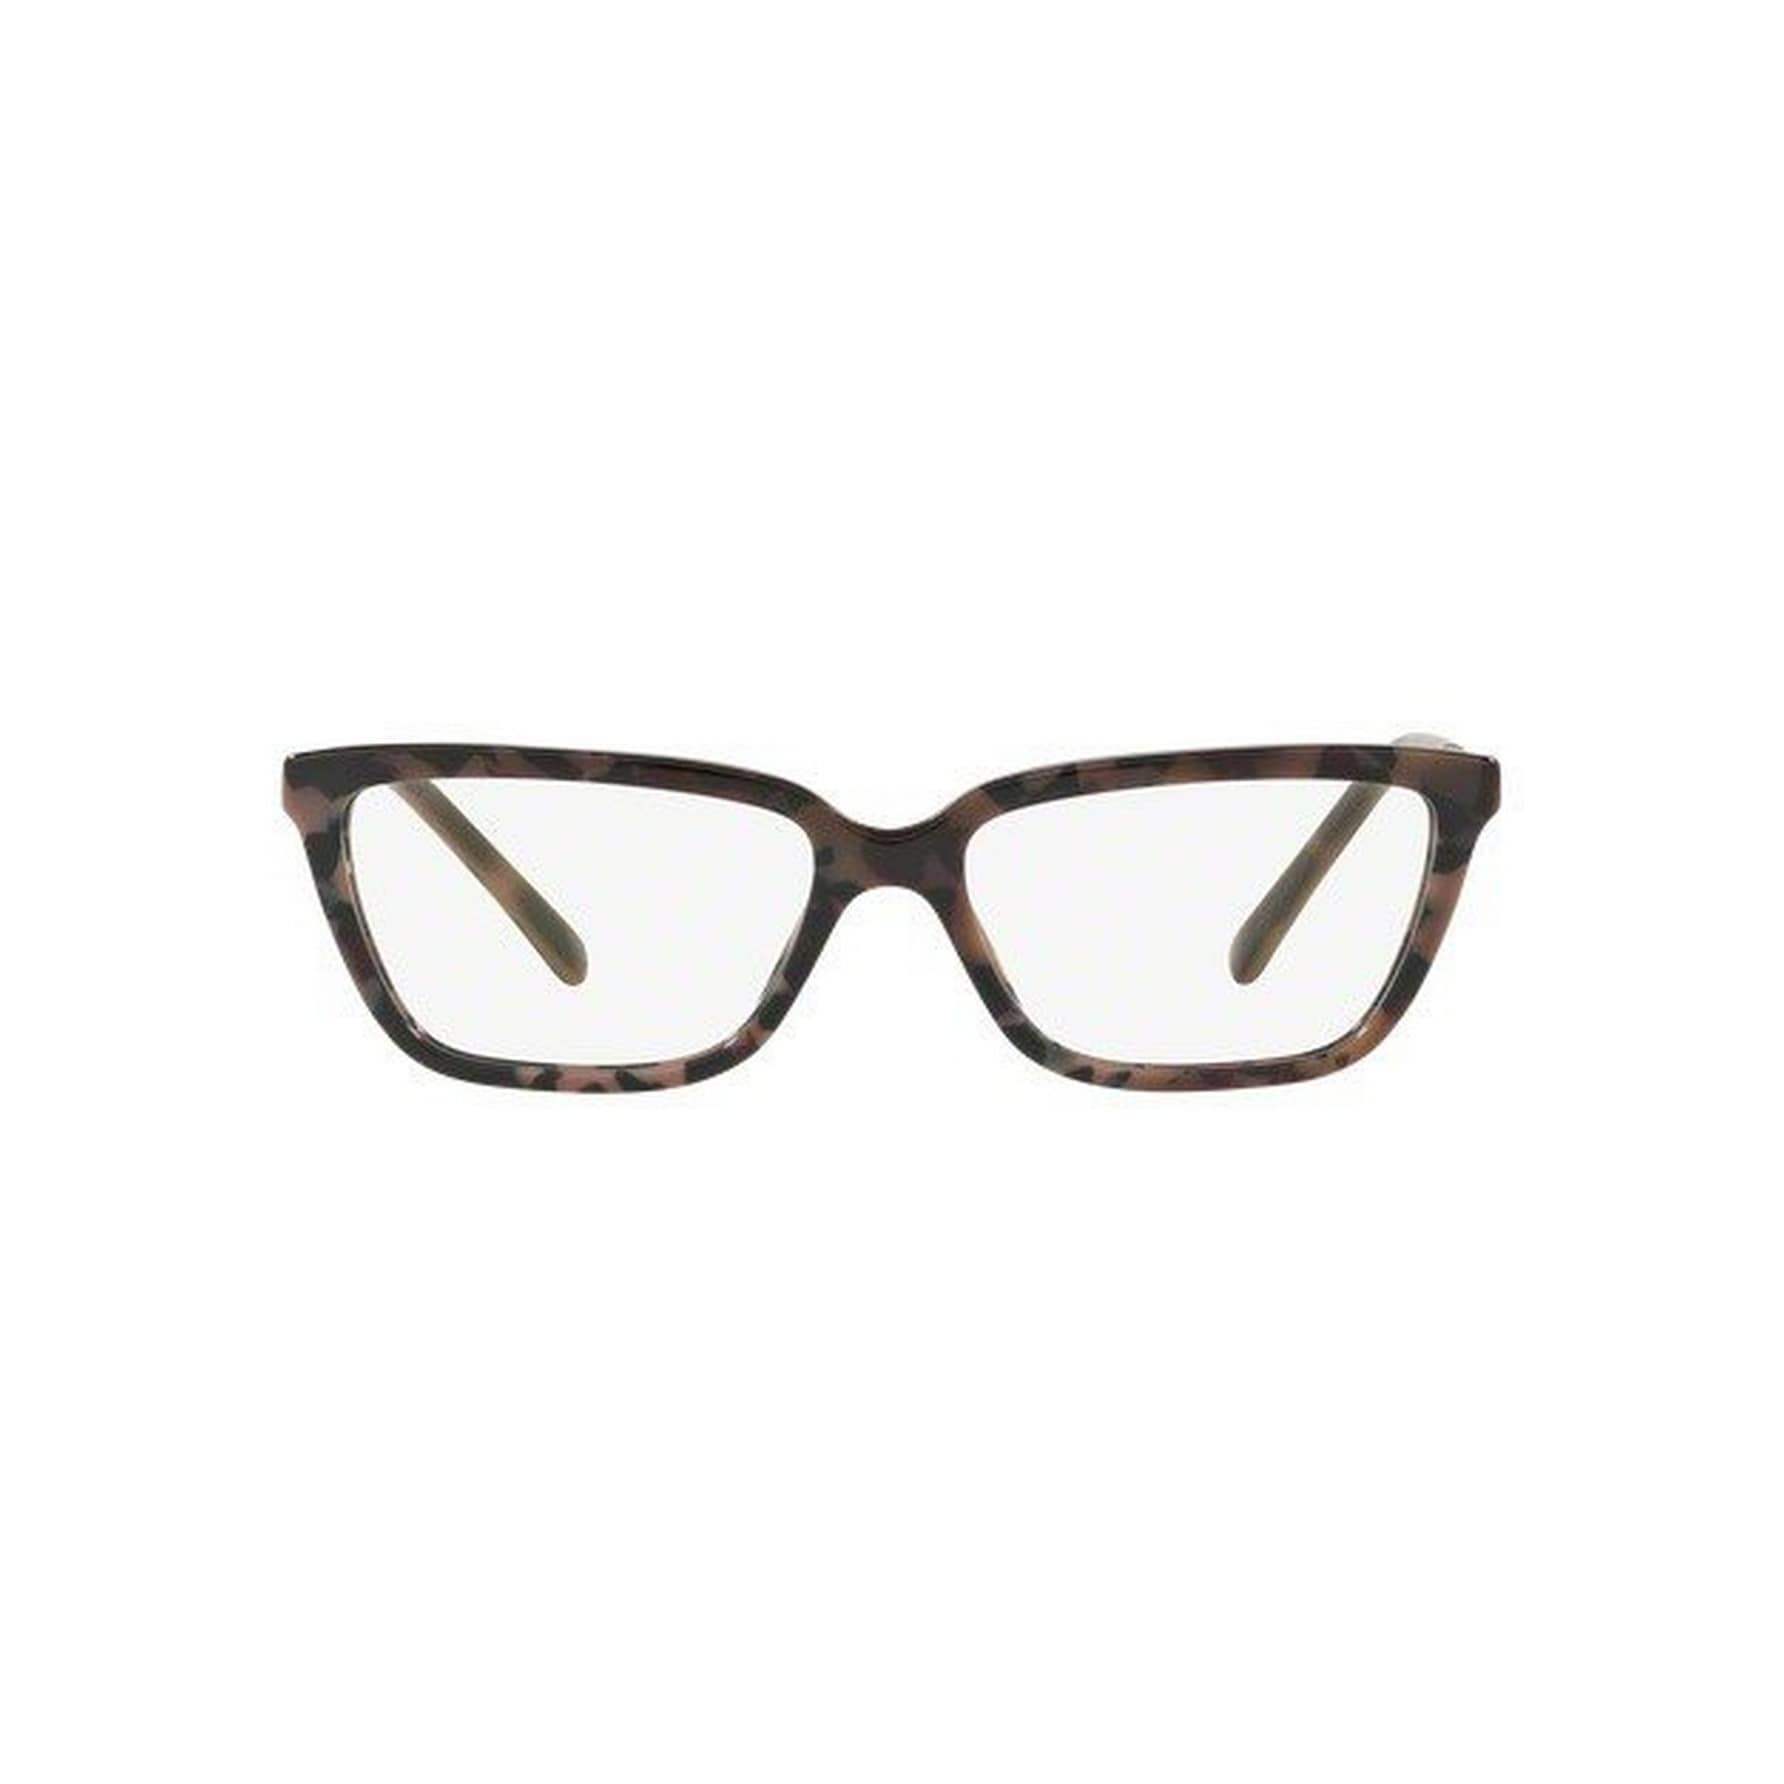 543e53290a Shop Burberry Women s BE2246F 3624 53 Cateye Metal Plastic Brown Clear  Eyeglasses - Free Shipping Today - Overstock - 14799509